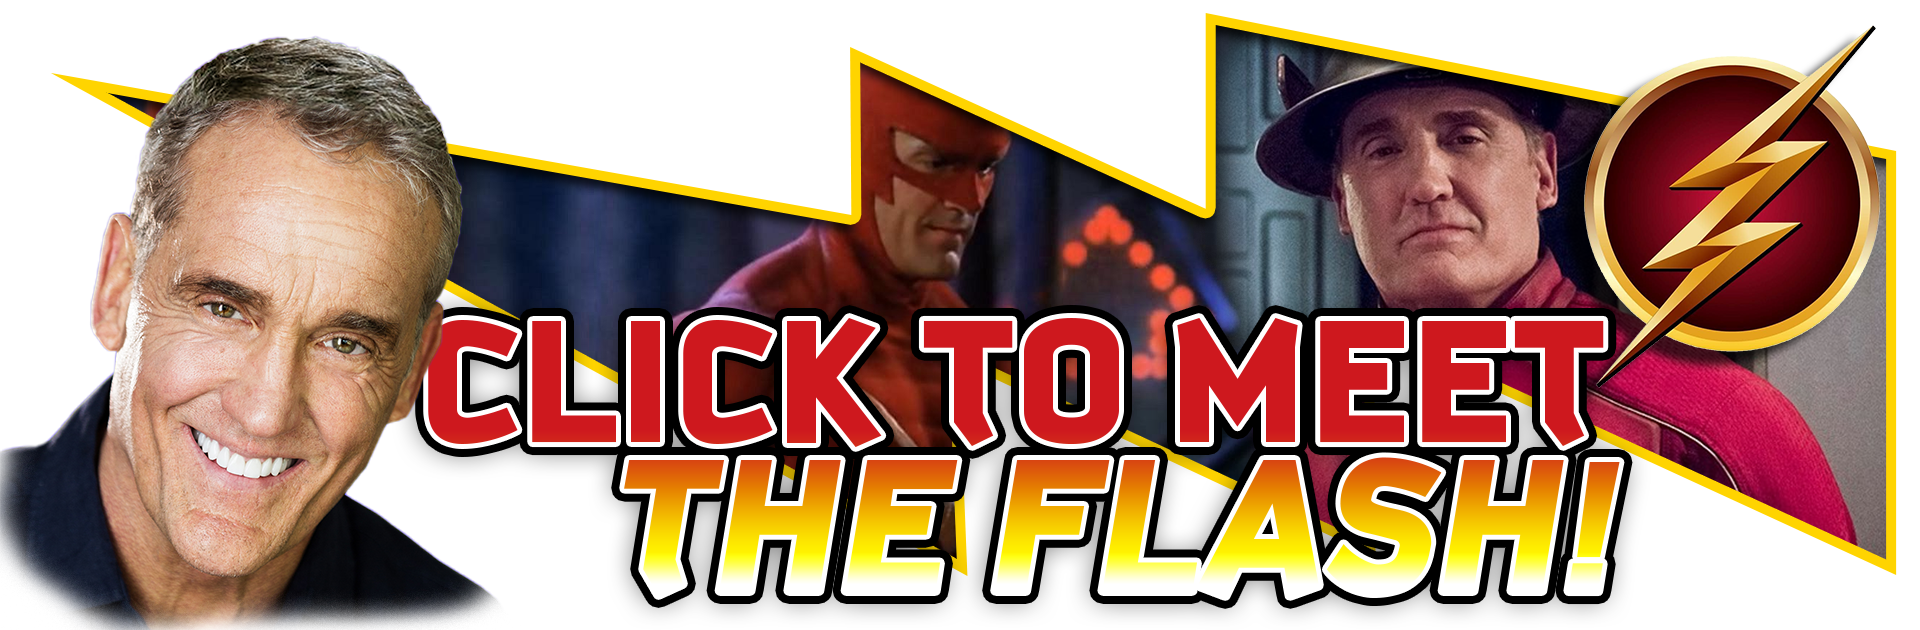 Click to Meet the Flash!